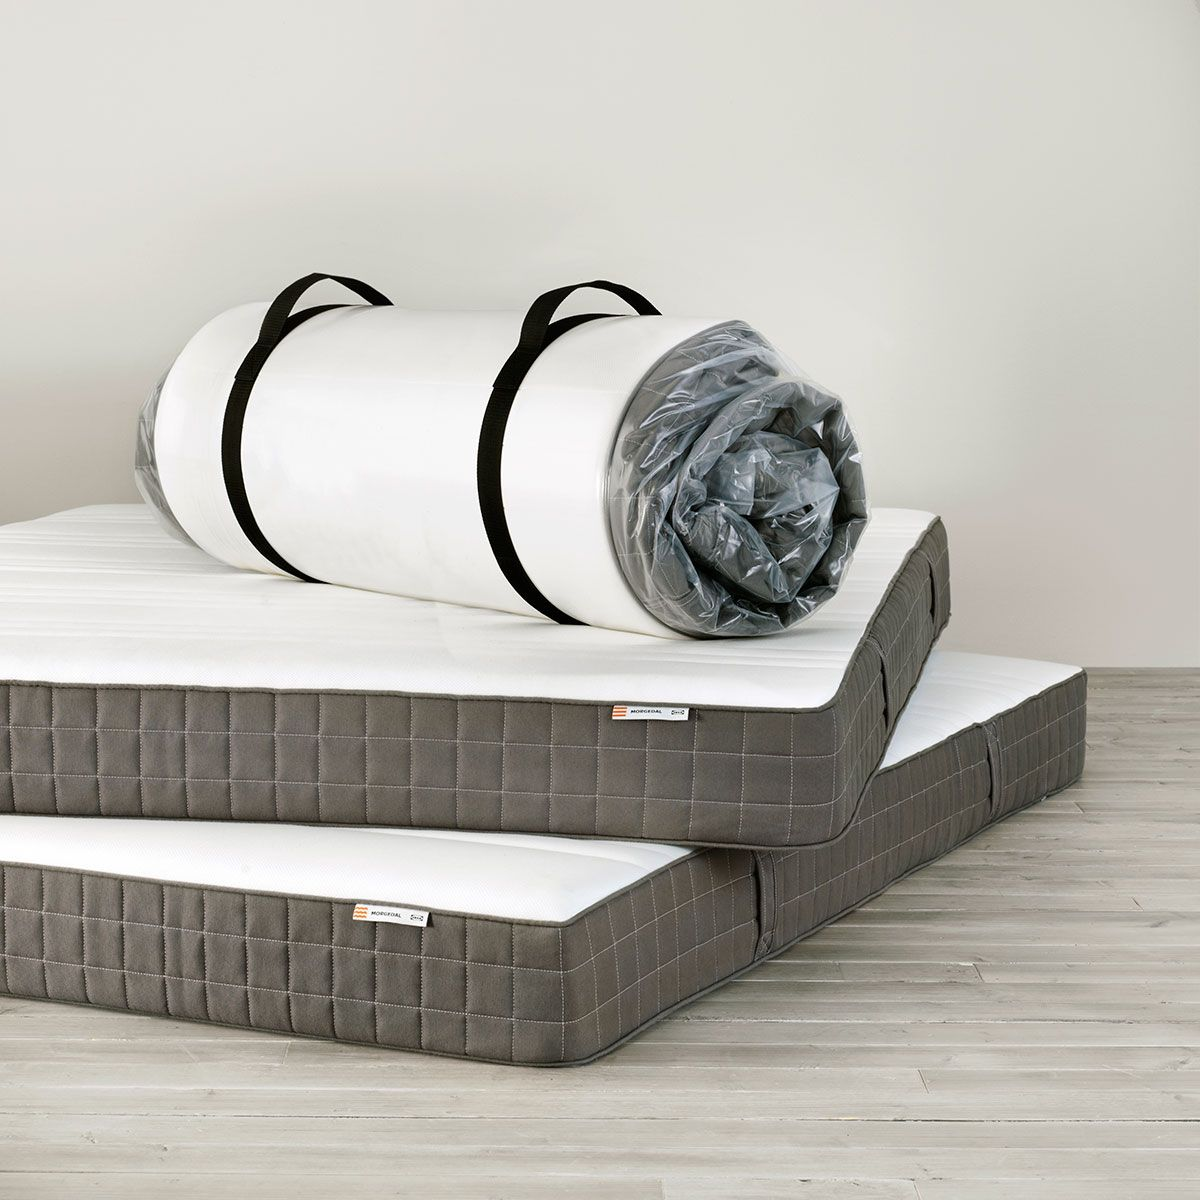 Roll Up Mattress Ikea Google Search Ikea Mattress Air